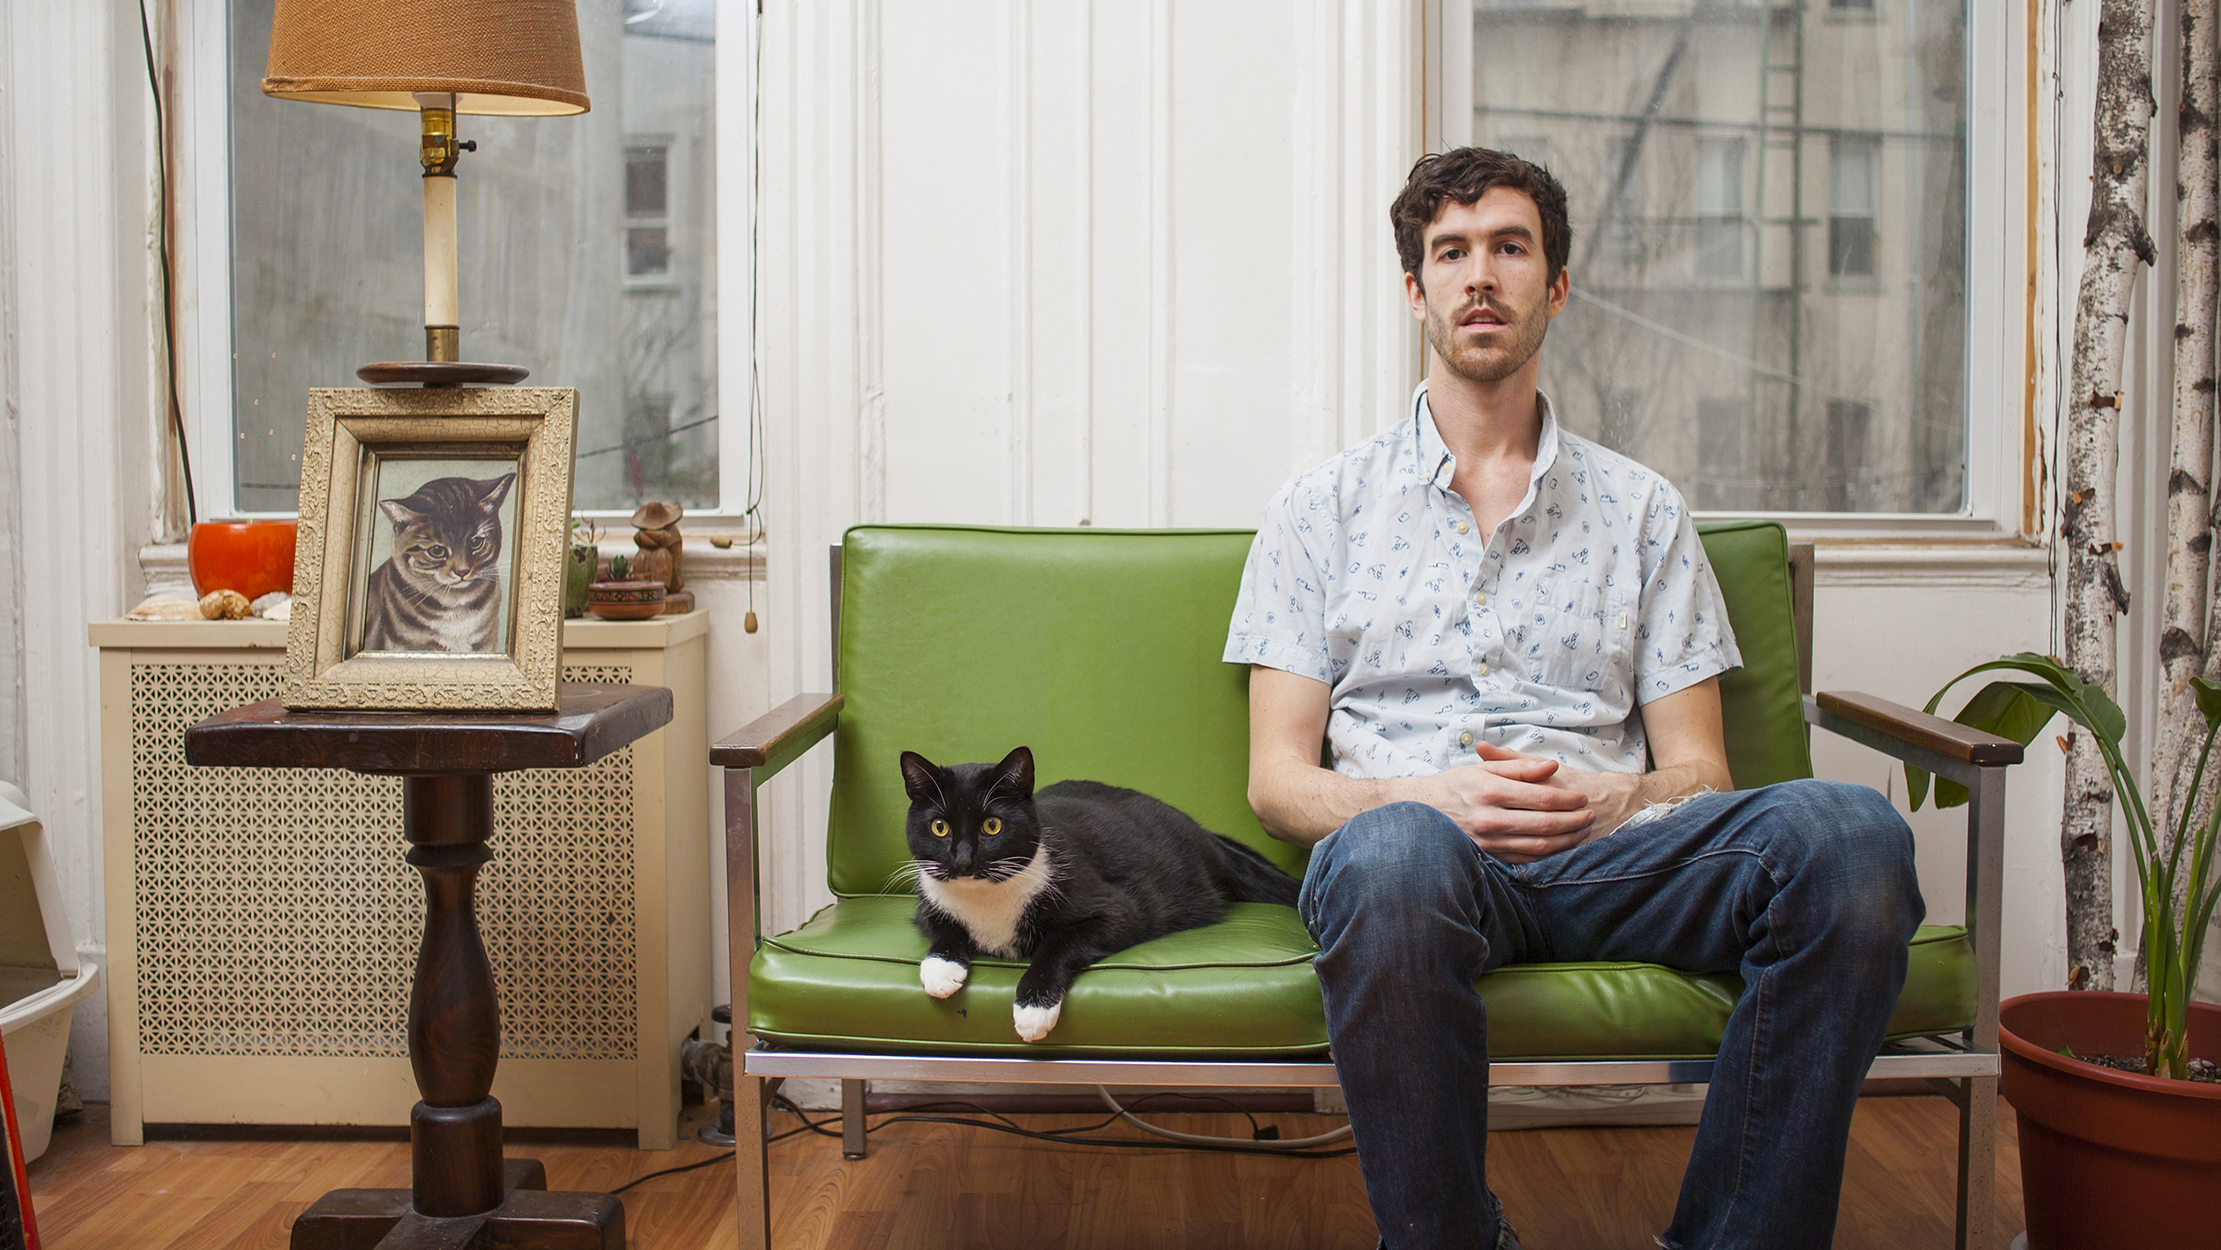 See adorable photos of New York men with their cats